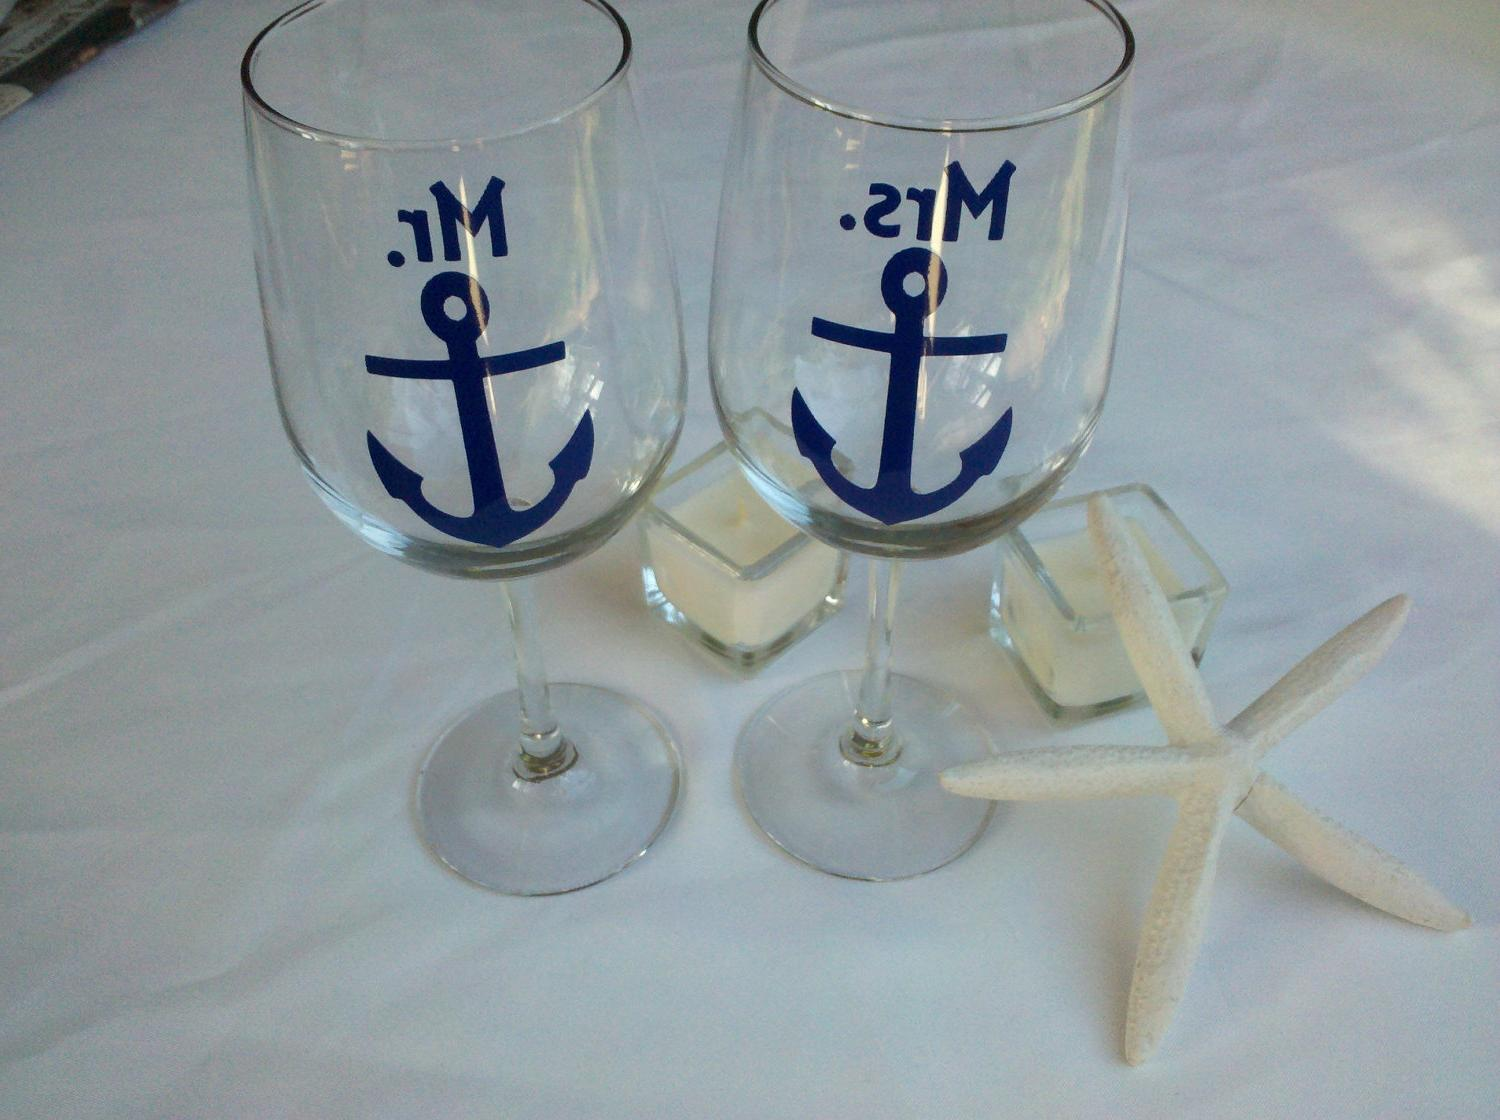 Mr. and Mrs. boat anchor wine